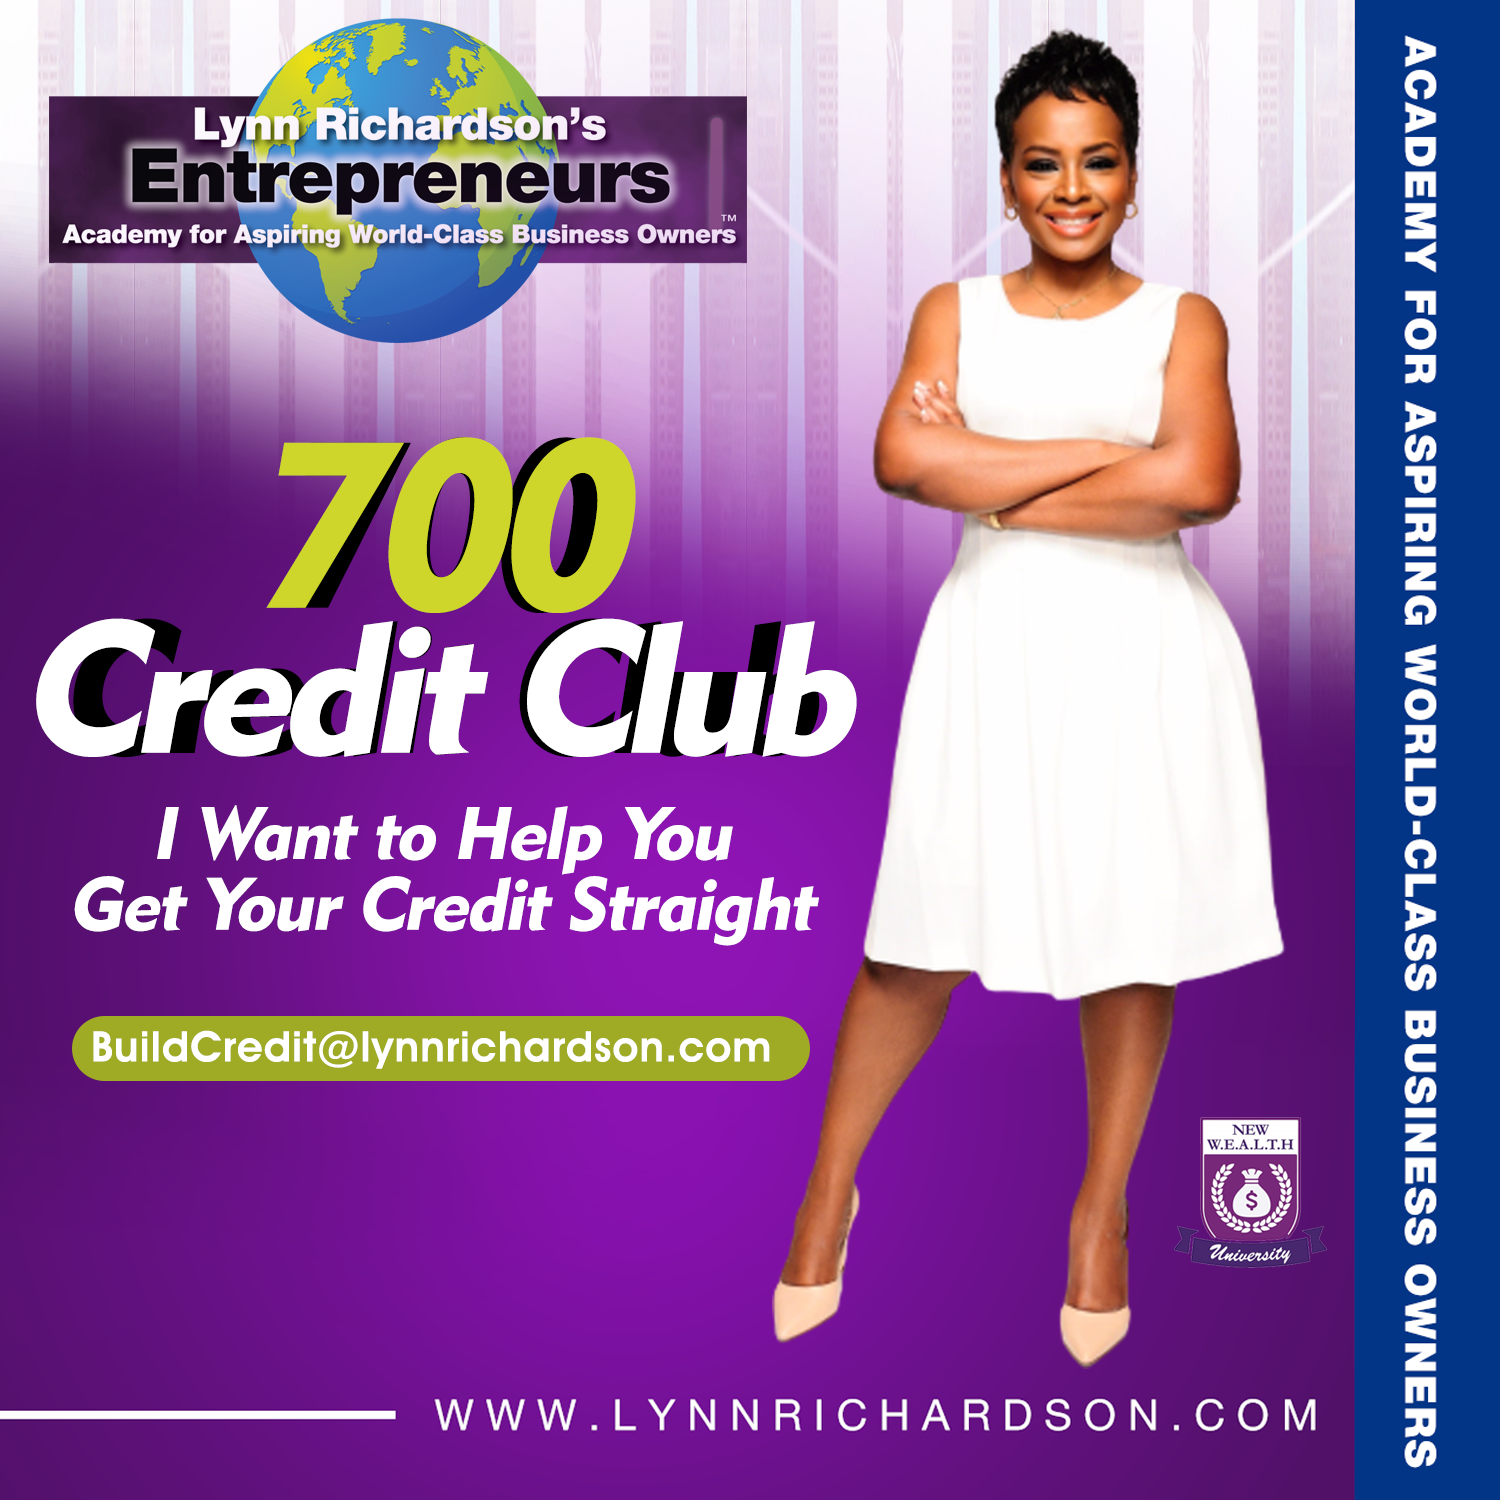 700 Credit Club - Increase Your Credit Scores and Build Wealth for Your Family